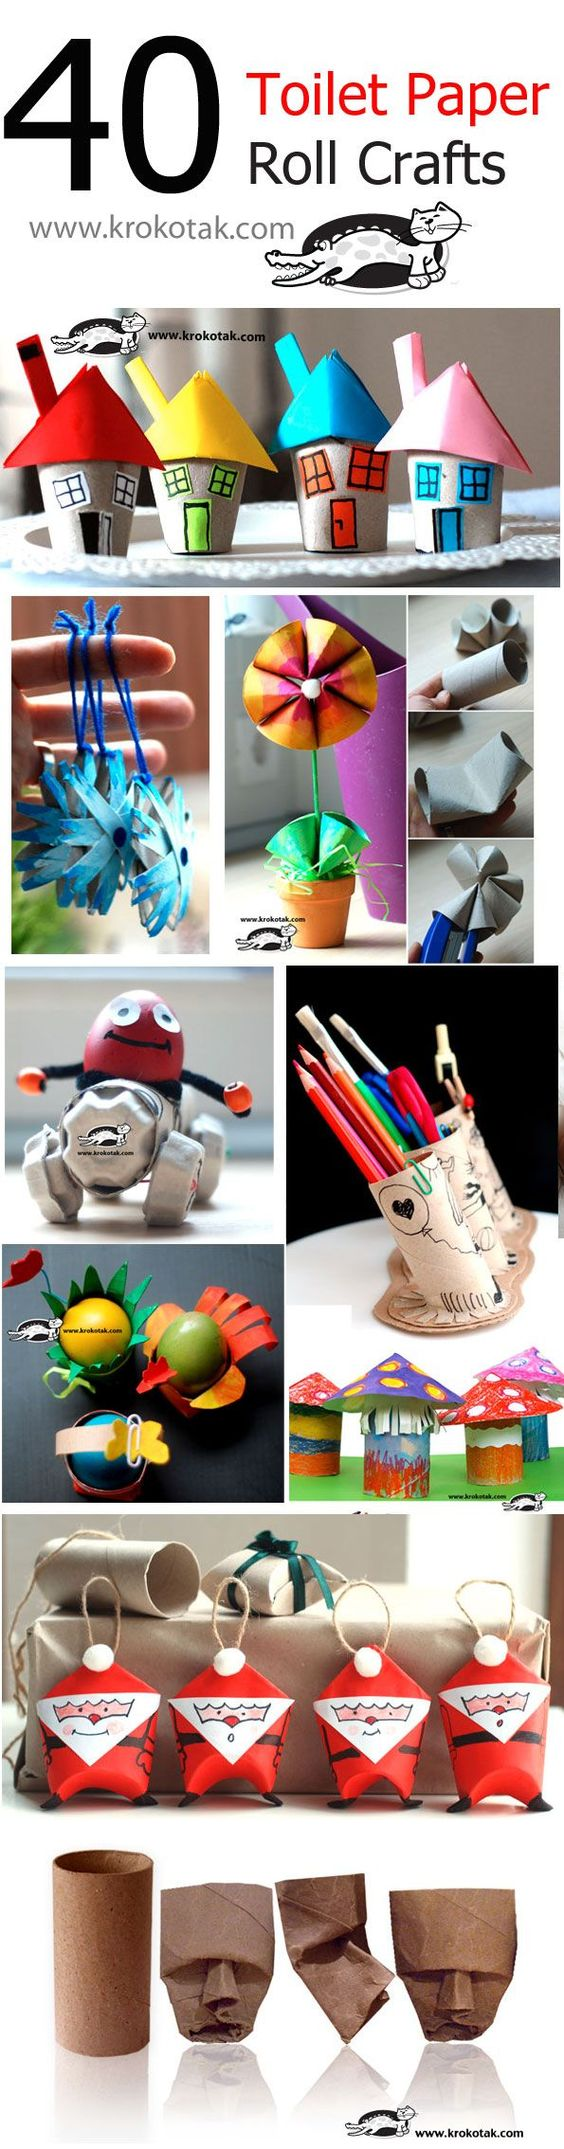 40 Toilet Paper Roll Crafts that are just awesome!  Check out the fat Santa ornaments or gift wrapping decorations!: